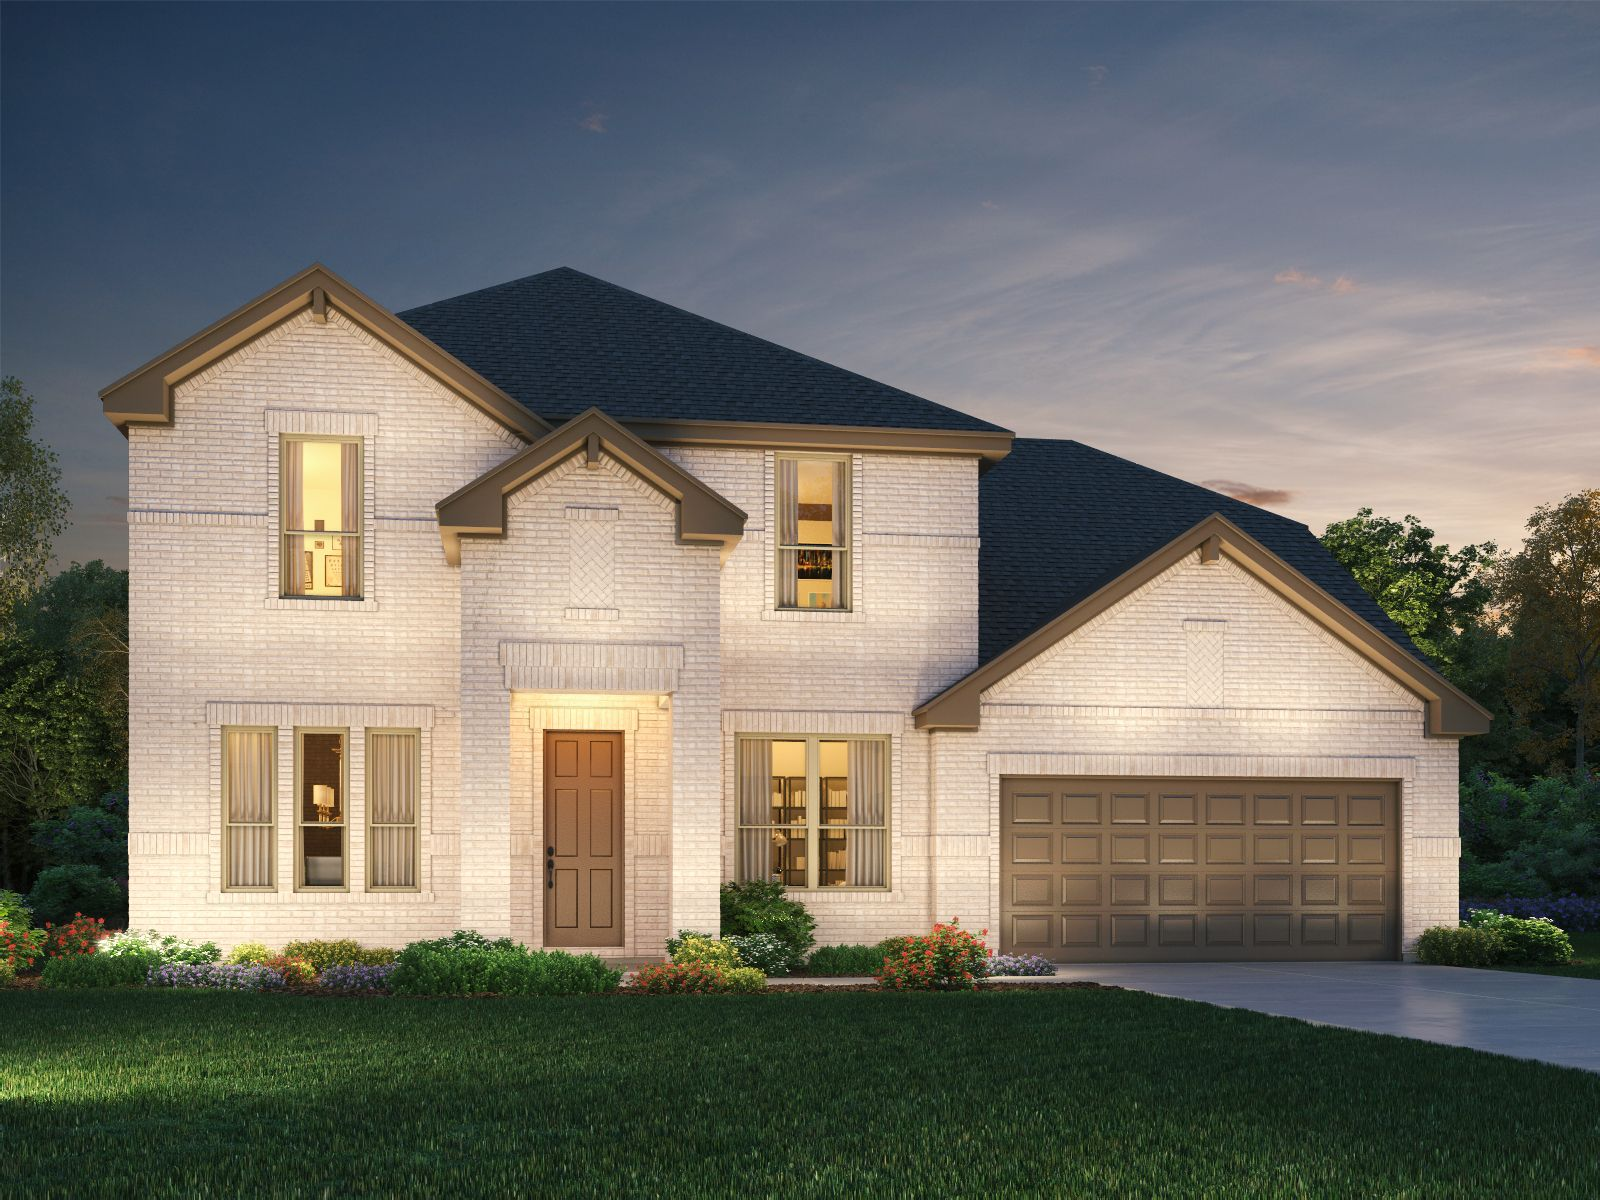 Imperial - Artisan Collection by Meritage Homes - CG